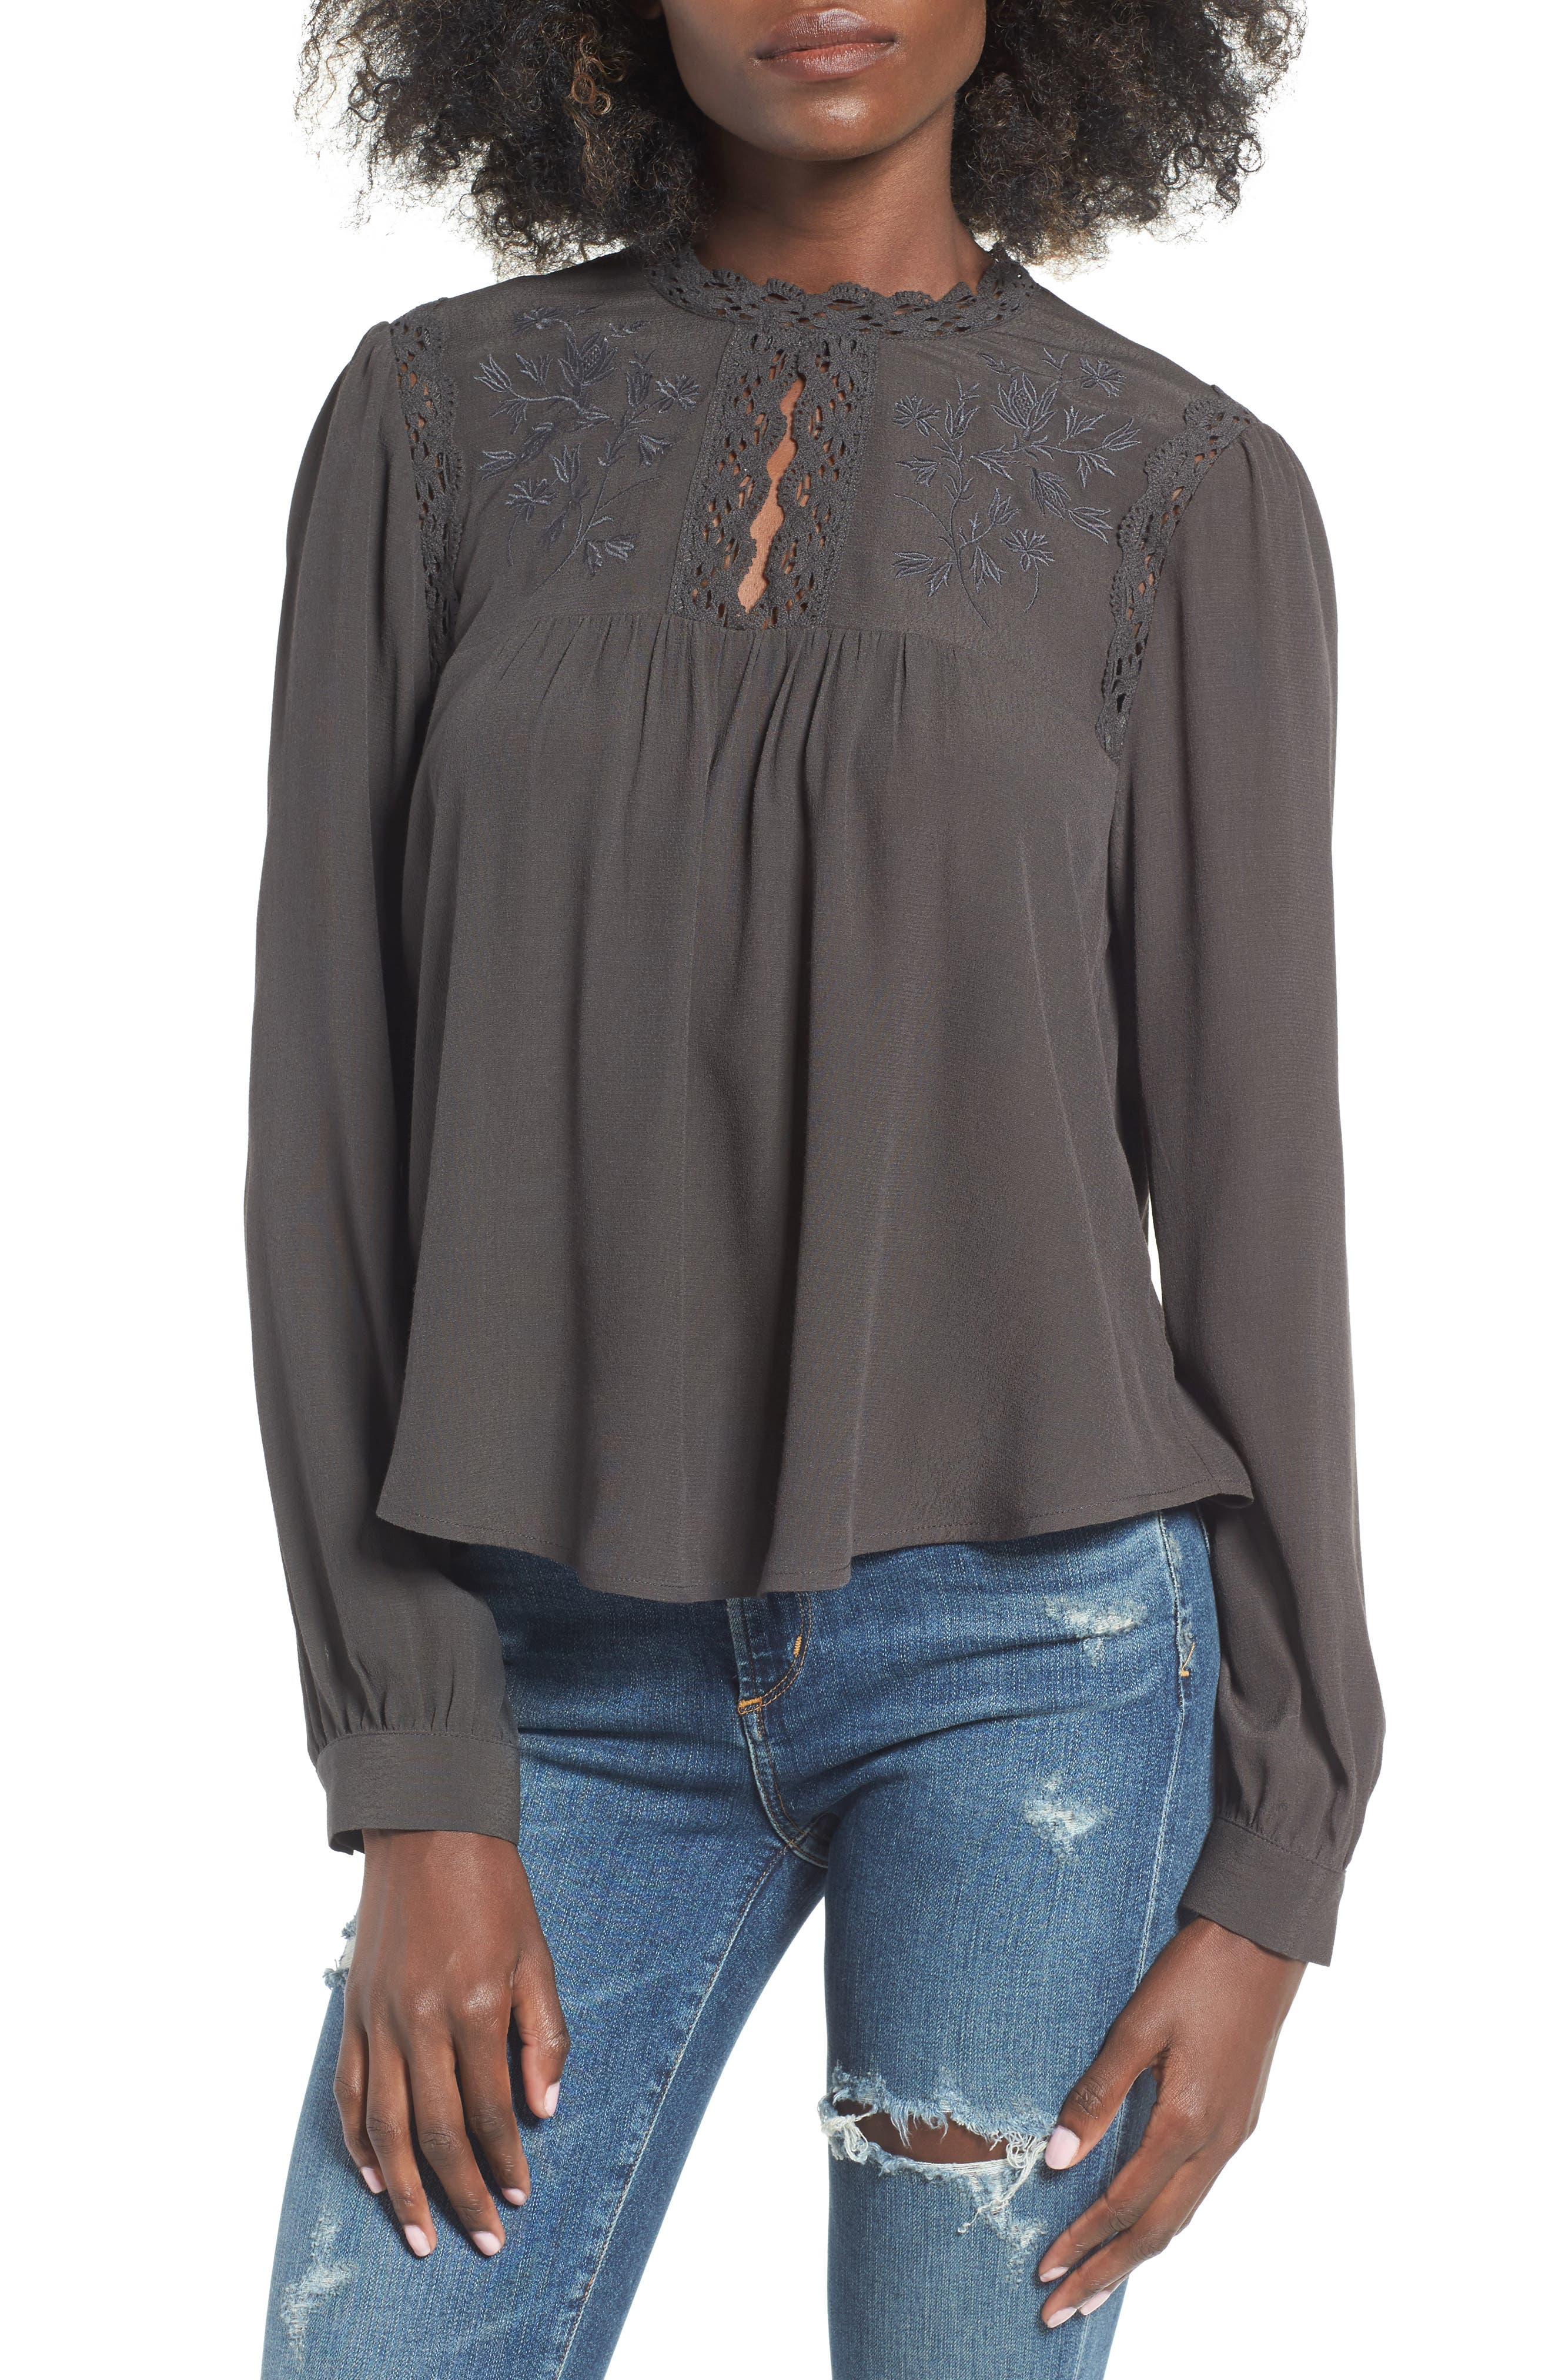 ASTR Embroidered Blouse,                             Main thumbnail 1, color,                             020